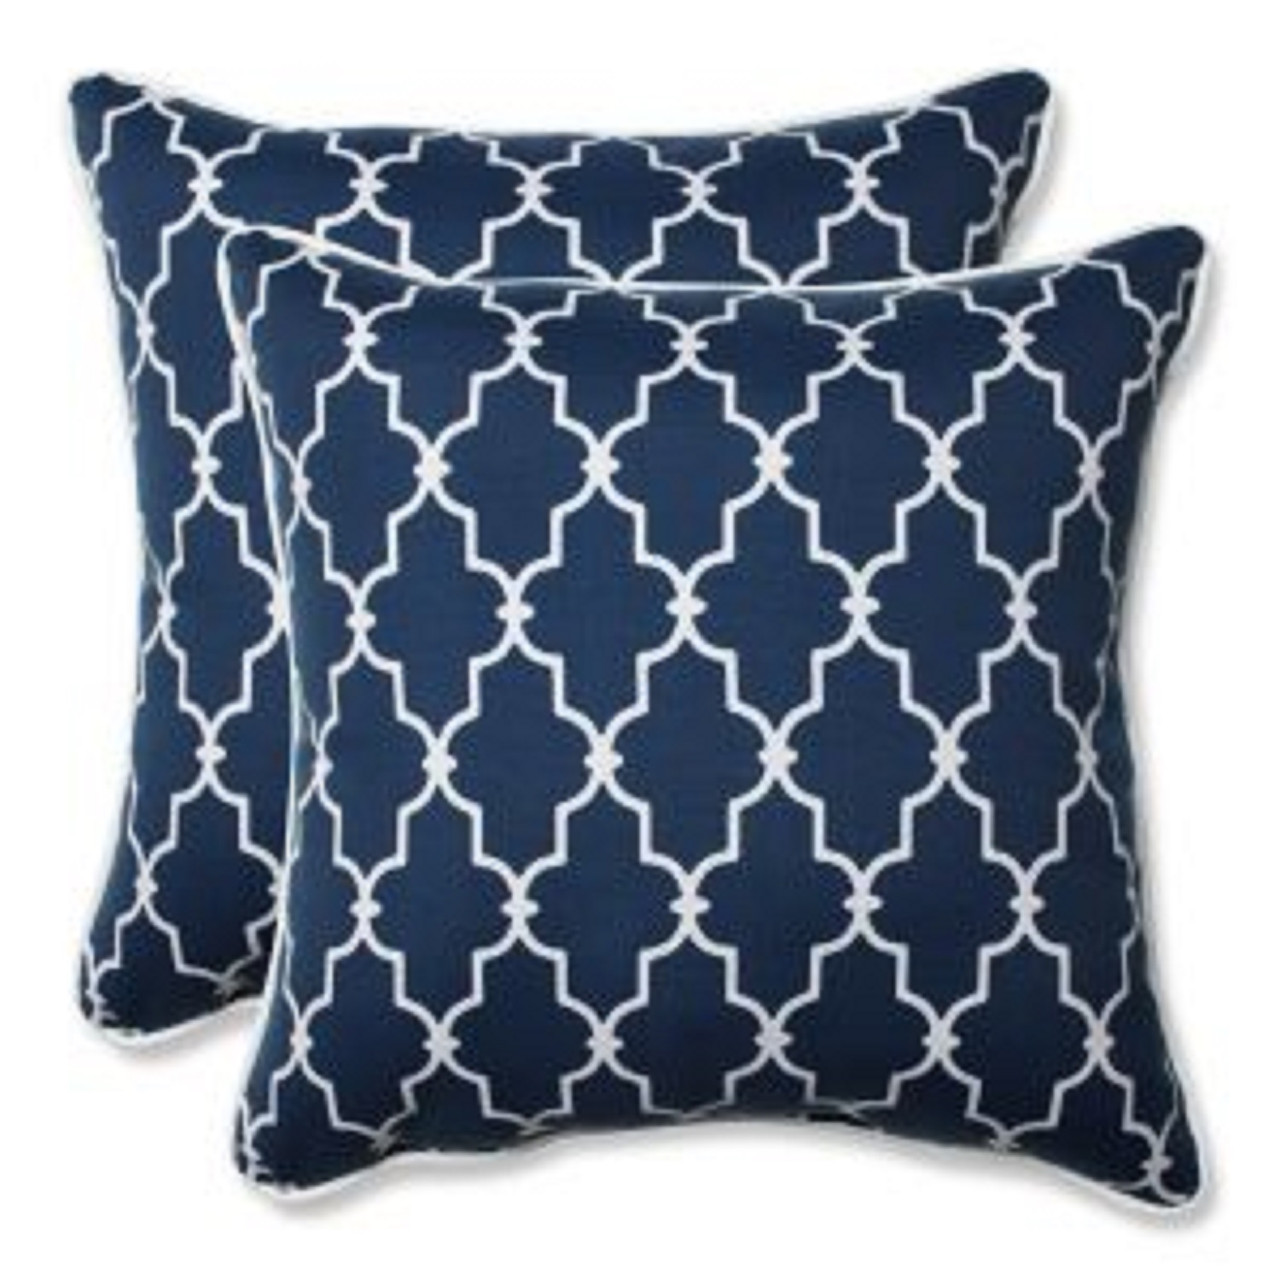 Set Of 2 Moroccan Gate Navy Blue White Square Corded Throw Pillows